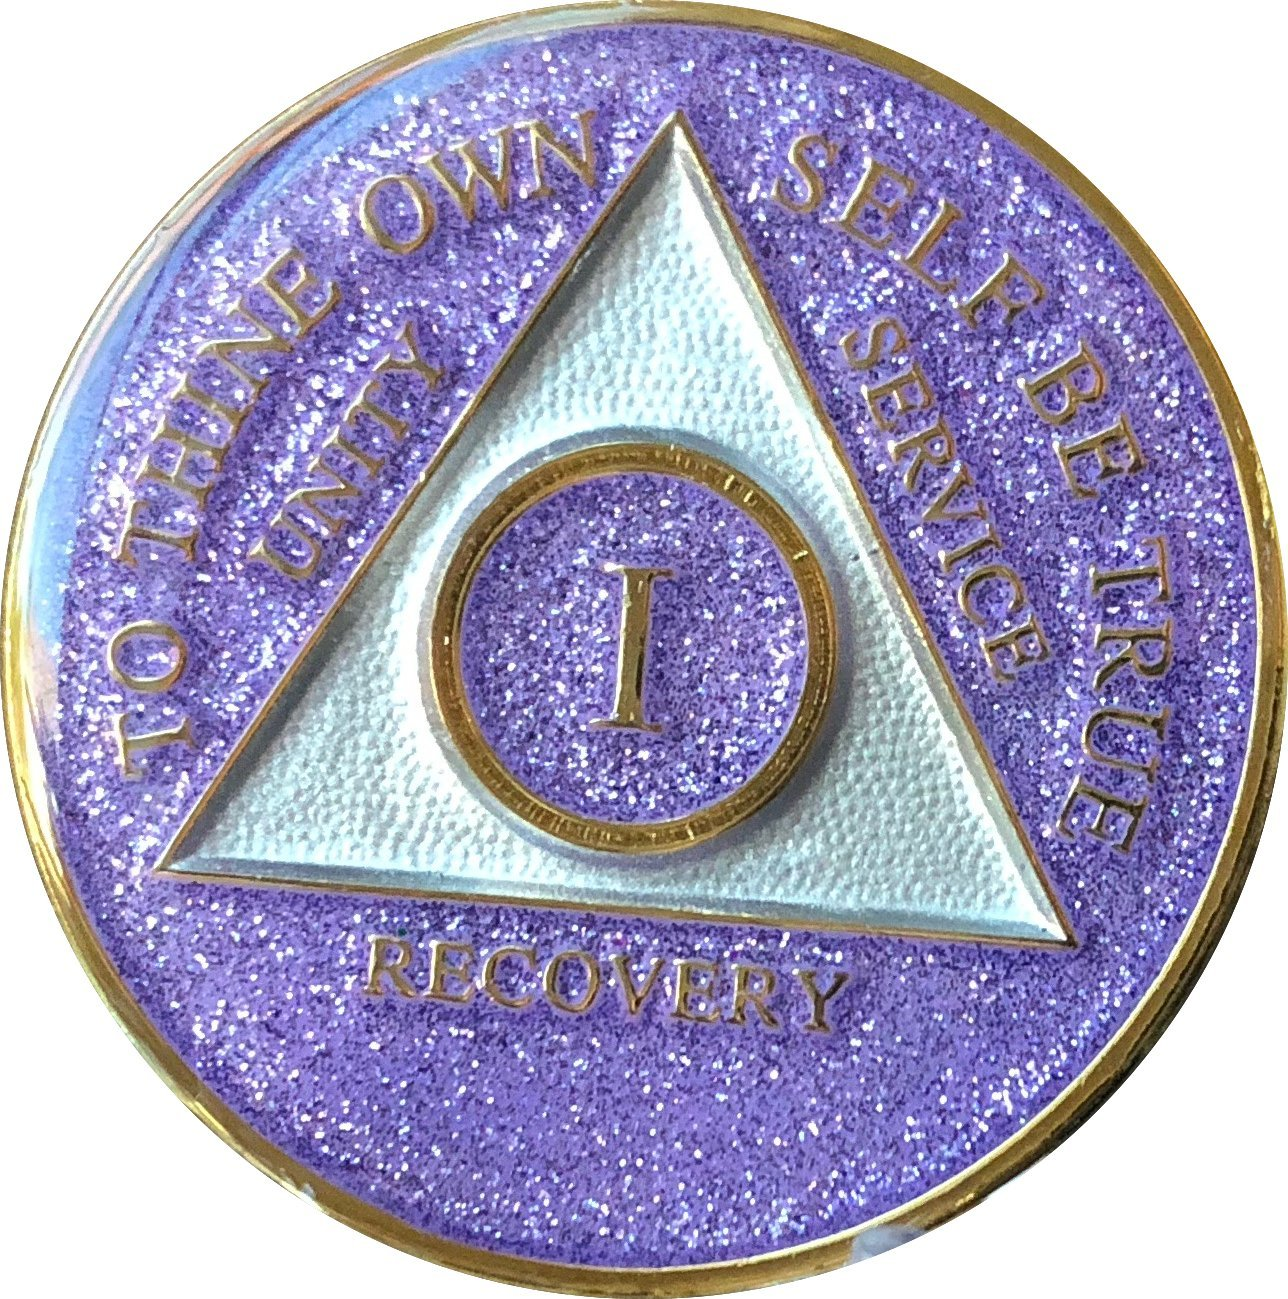 AA Sobriety Chip 1 Year Purple Glitter Tri-Plate Alcoholics Anonymous Medallion